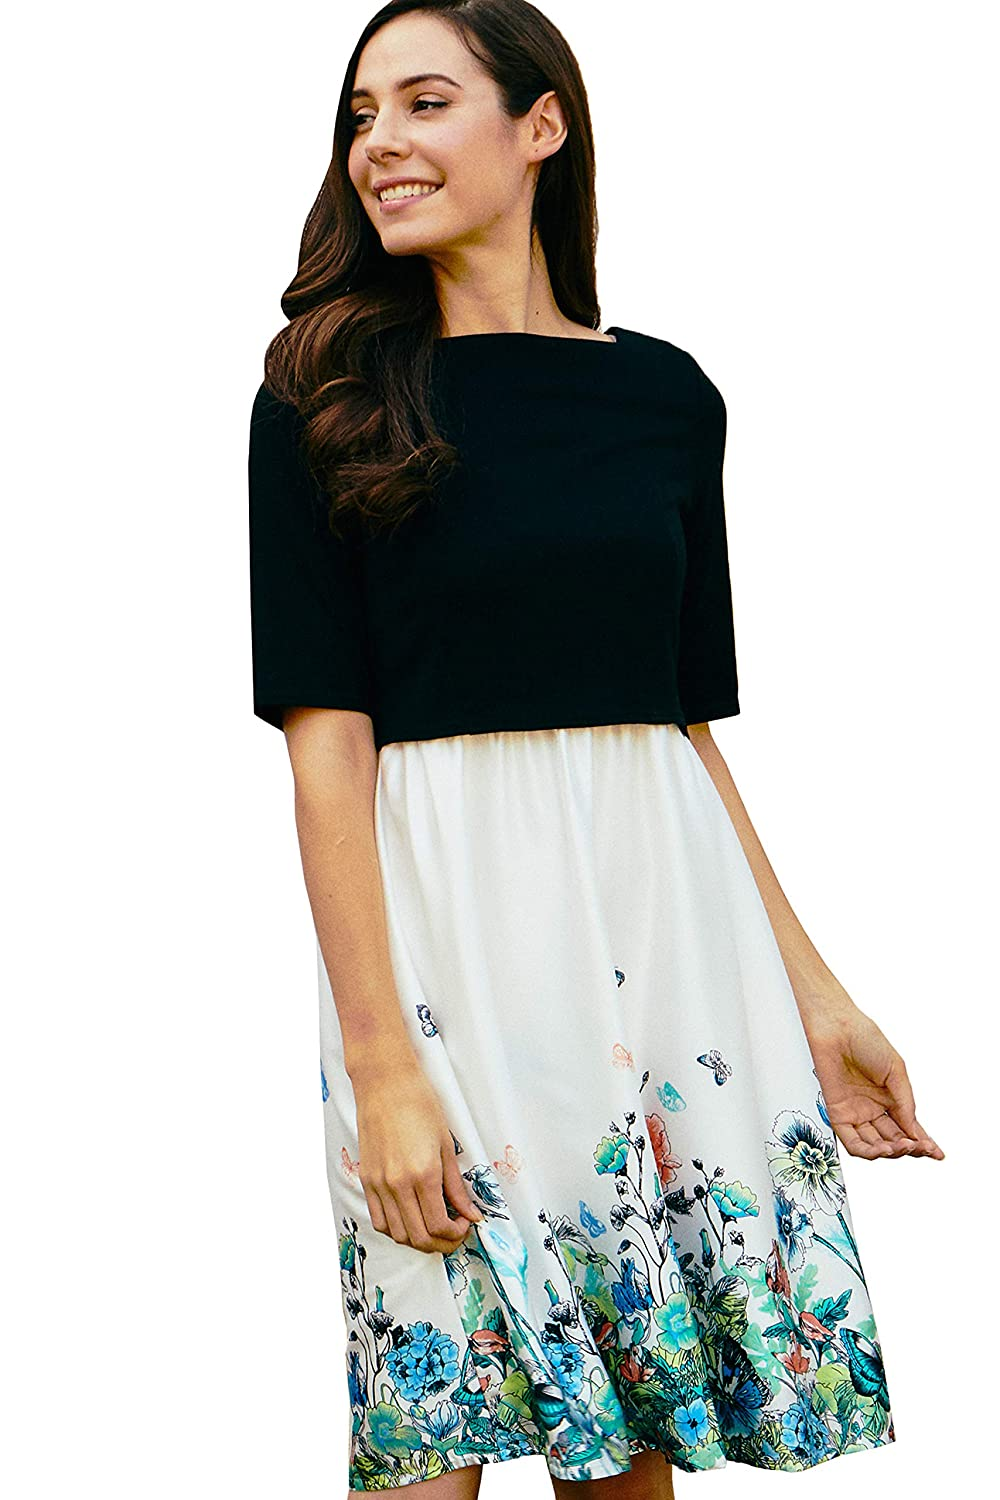 Black x White Sweet Mommy Maternity and Nursing Half Sleeve Top and Cami Floral Pattern Dress